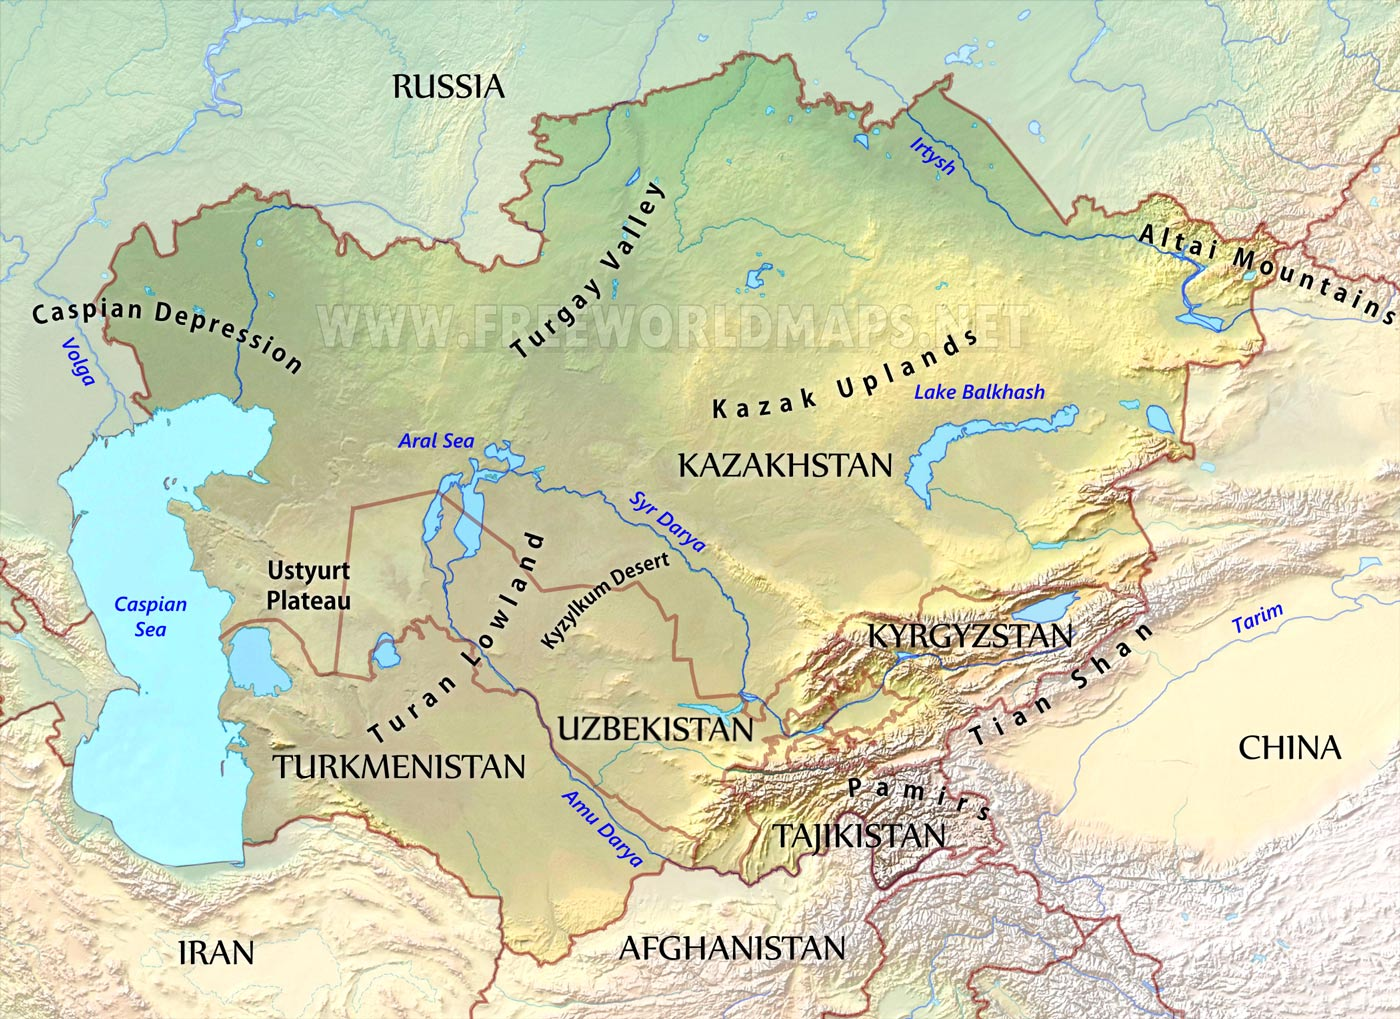 centralasia-physical-map | Eurasian Geopolitics